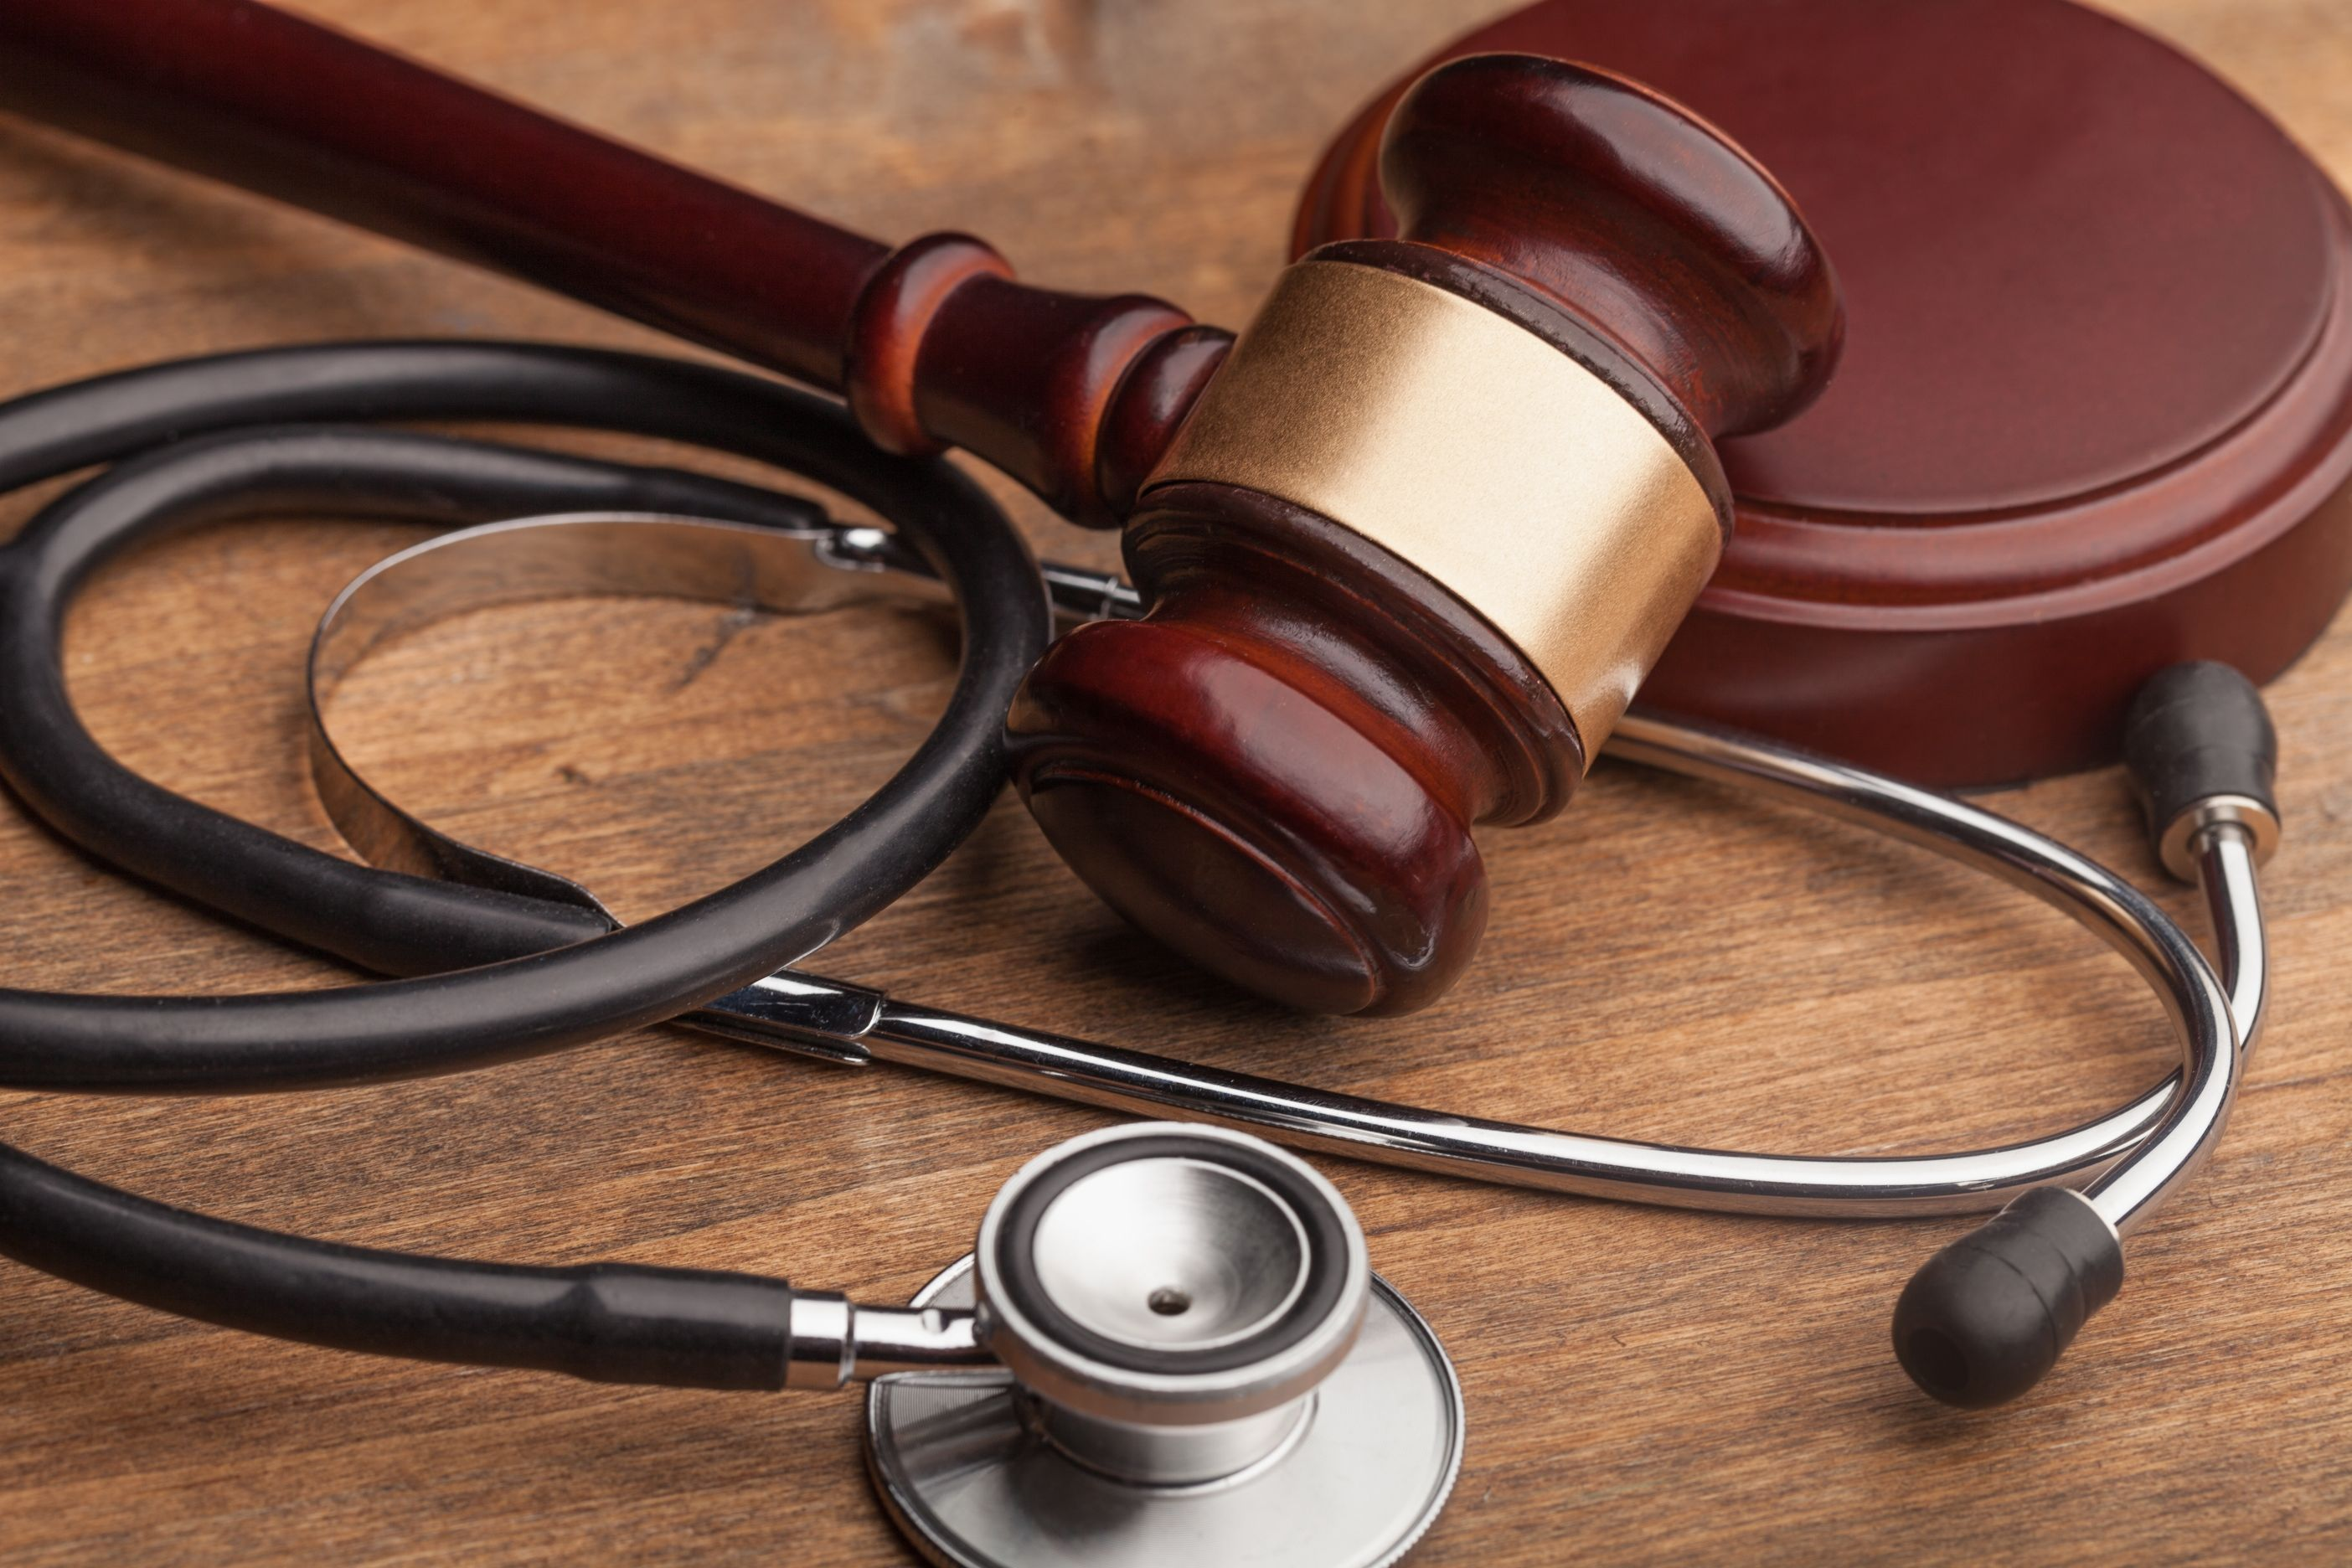 medical law project The commonwealth medical law project, hackney, hackney, united kingdom: rated 48 of 5, check 14 reviews of the commonwealth medical law project, lawyer.